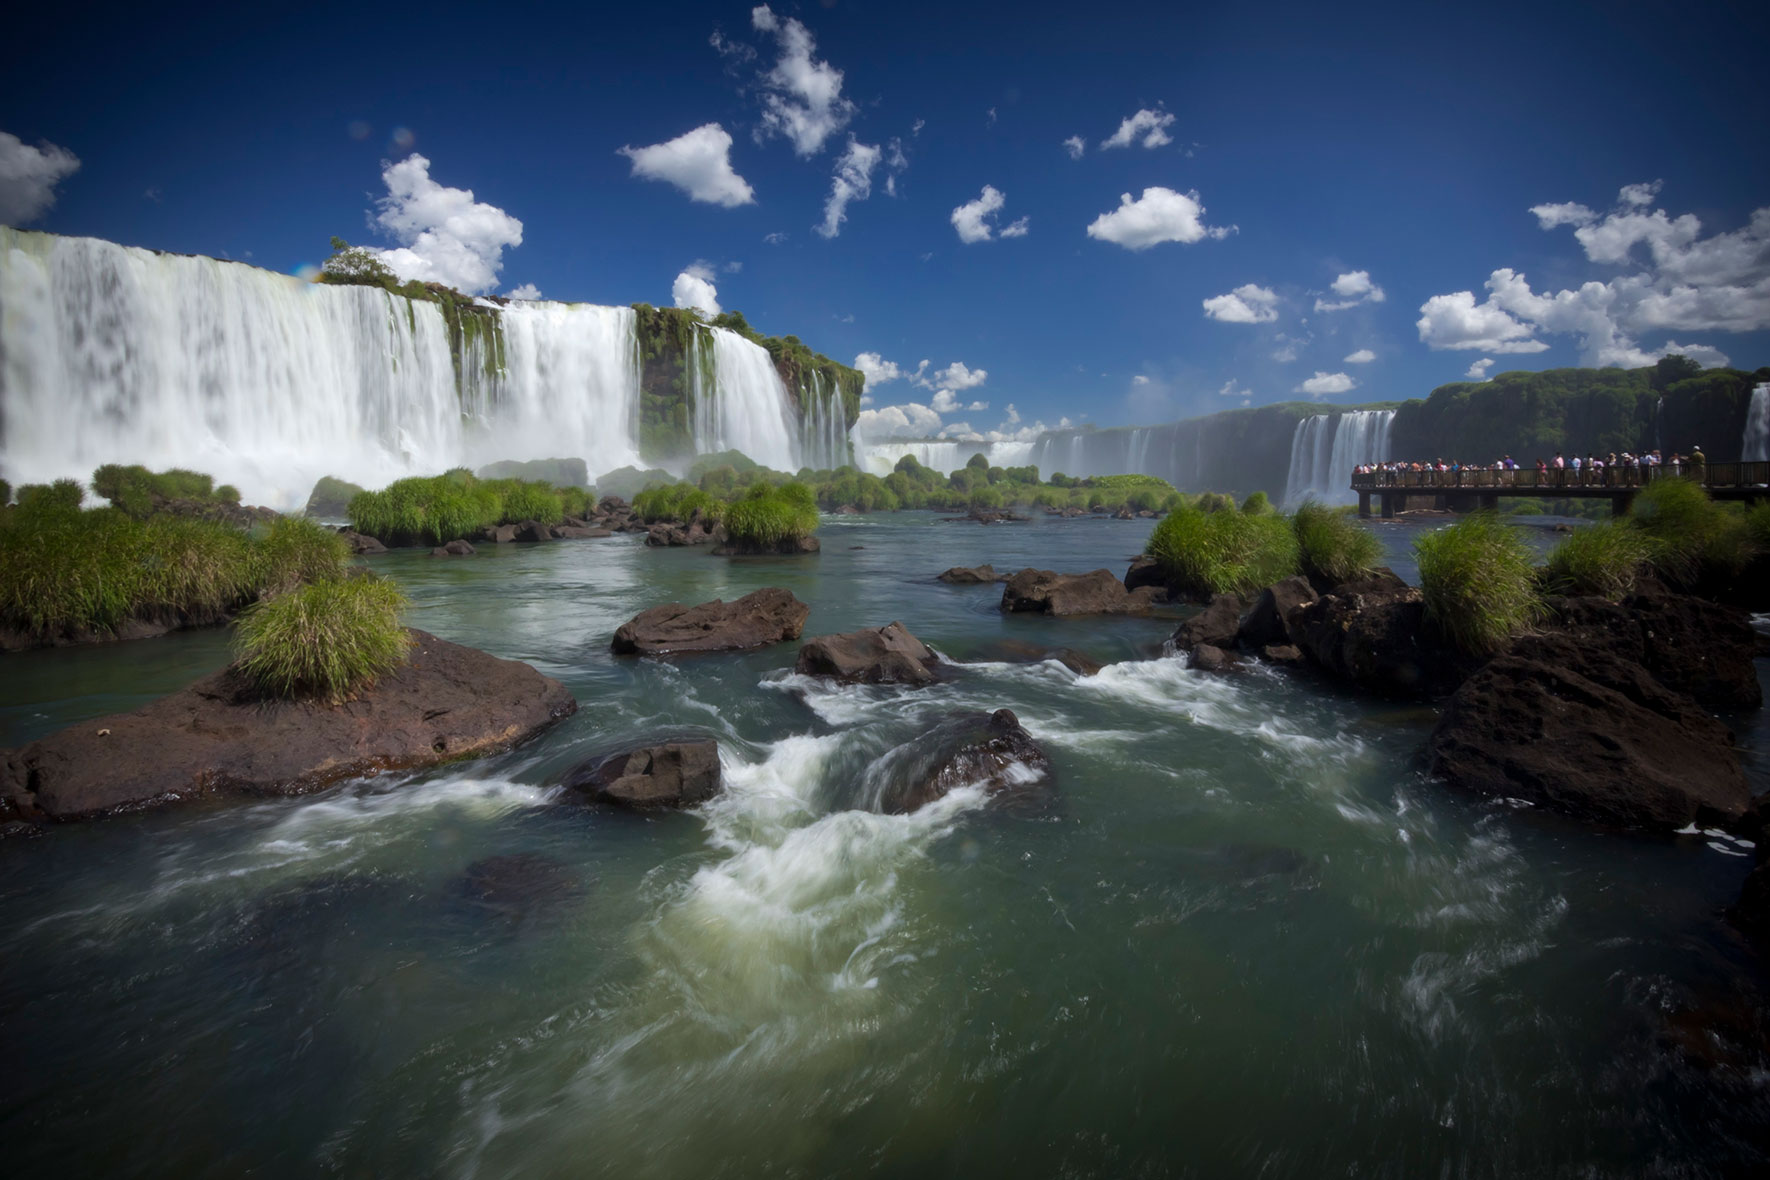 Iguazu-Waterfalls-Brazilian-Side-02